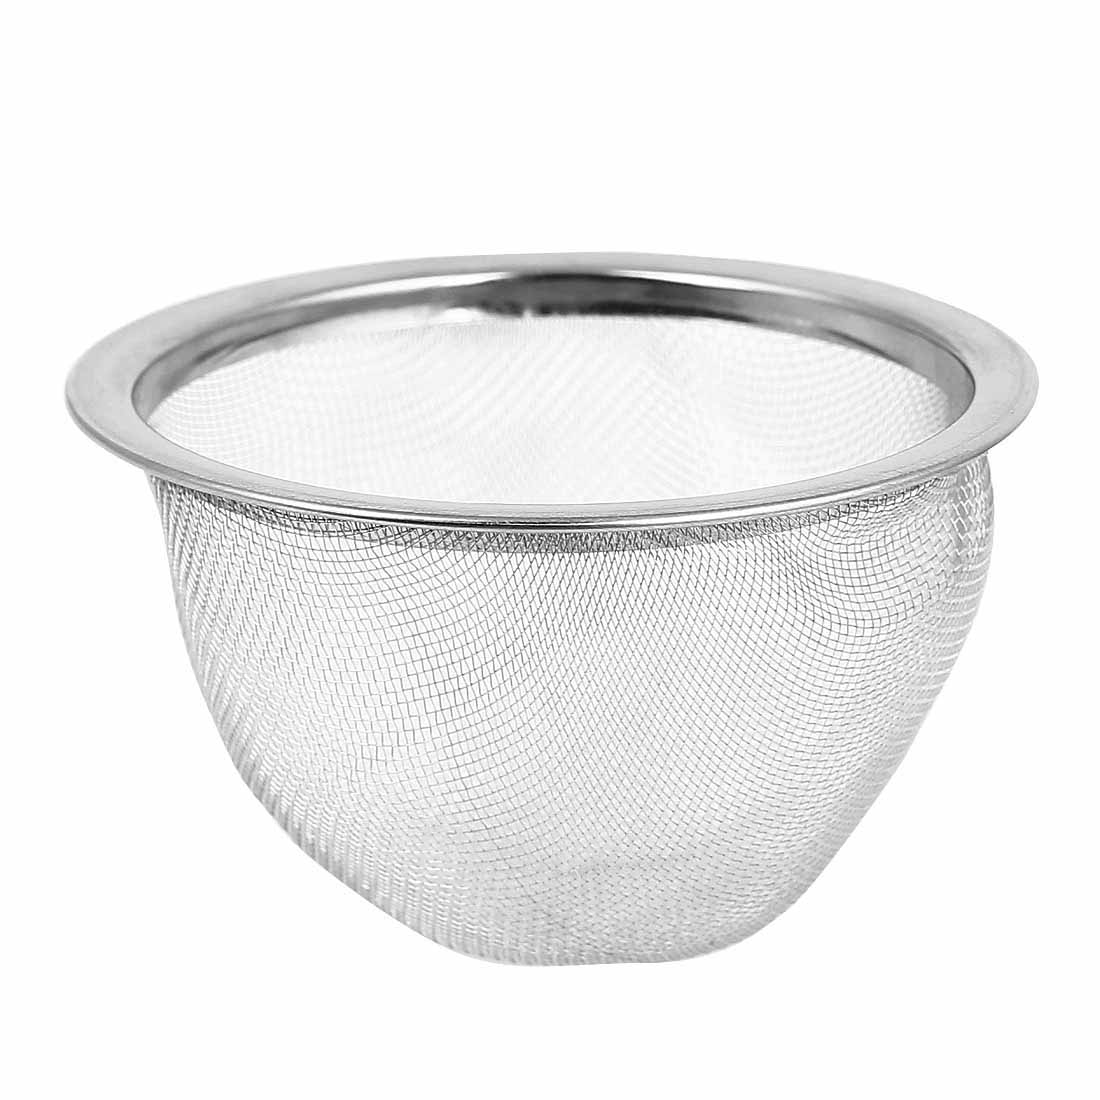 Silver Tone Metal Mesh Hole Design Tea Leaves Spice Strainer Teapot Filter 76mm Dia